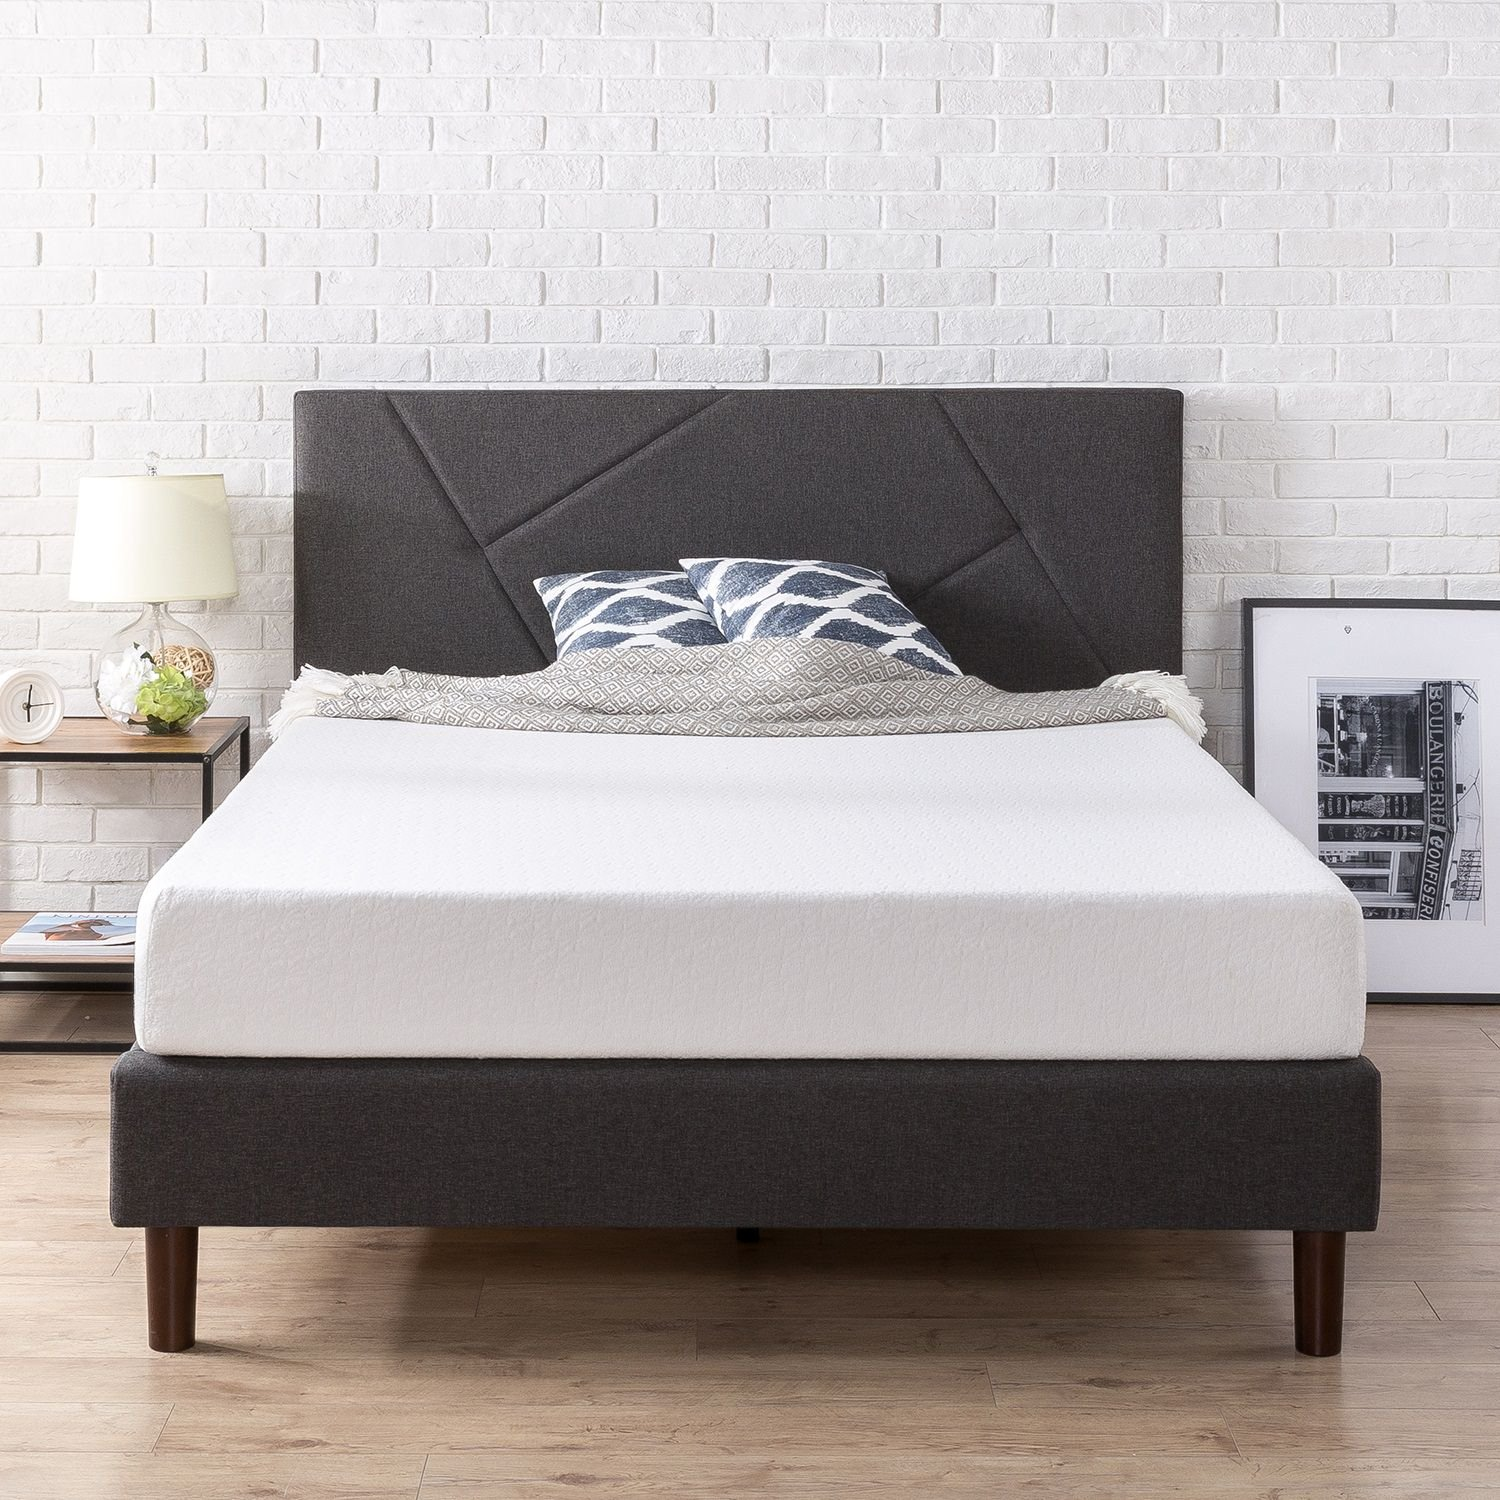 Zinus FGPP-Q Upholstered Platform Bed, Queen, Not Available by Zinus